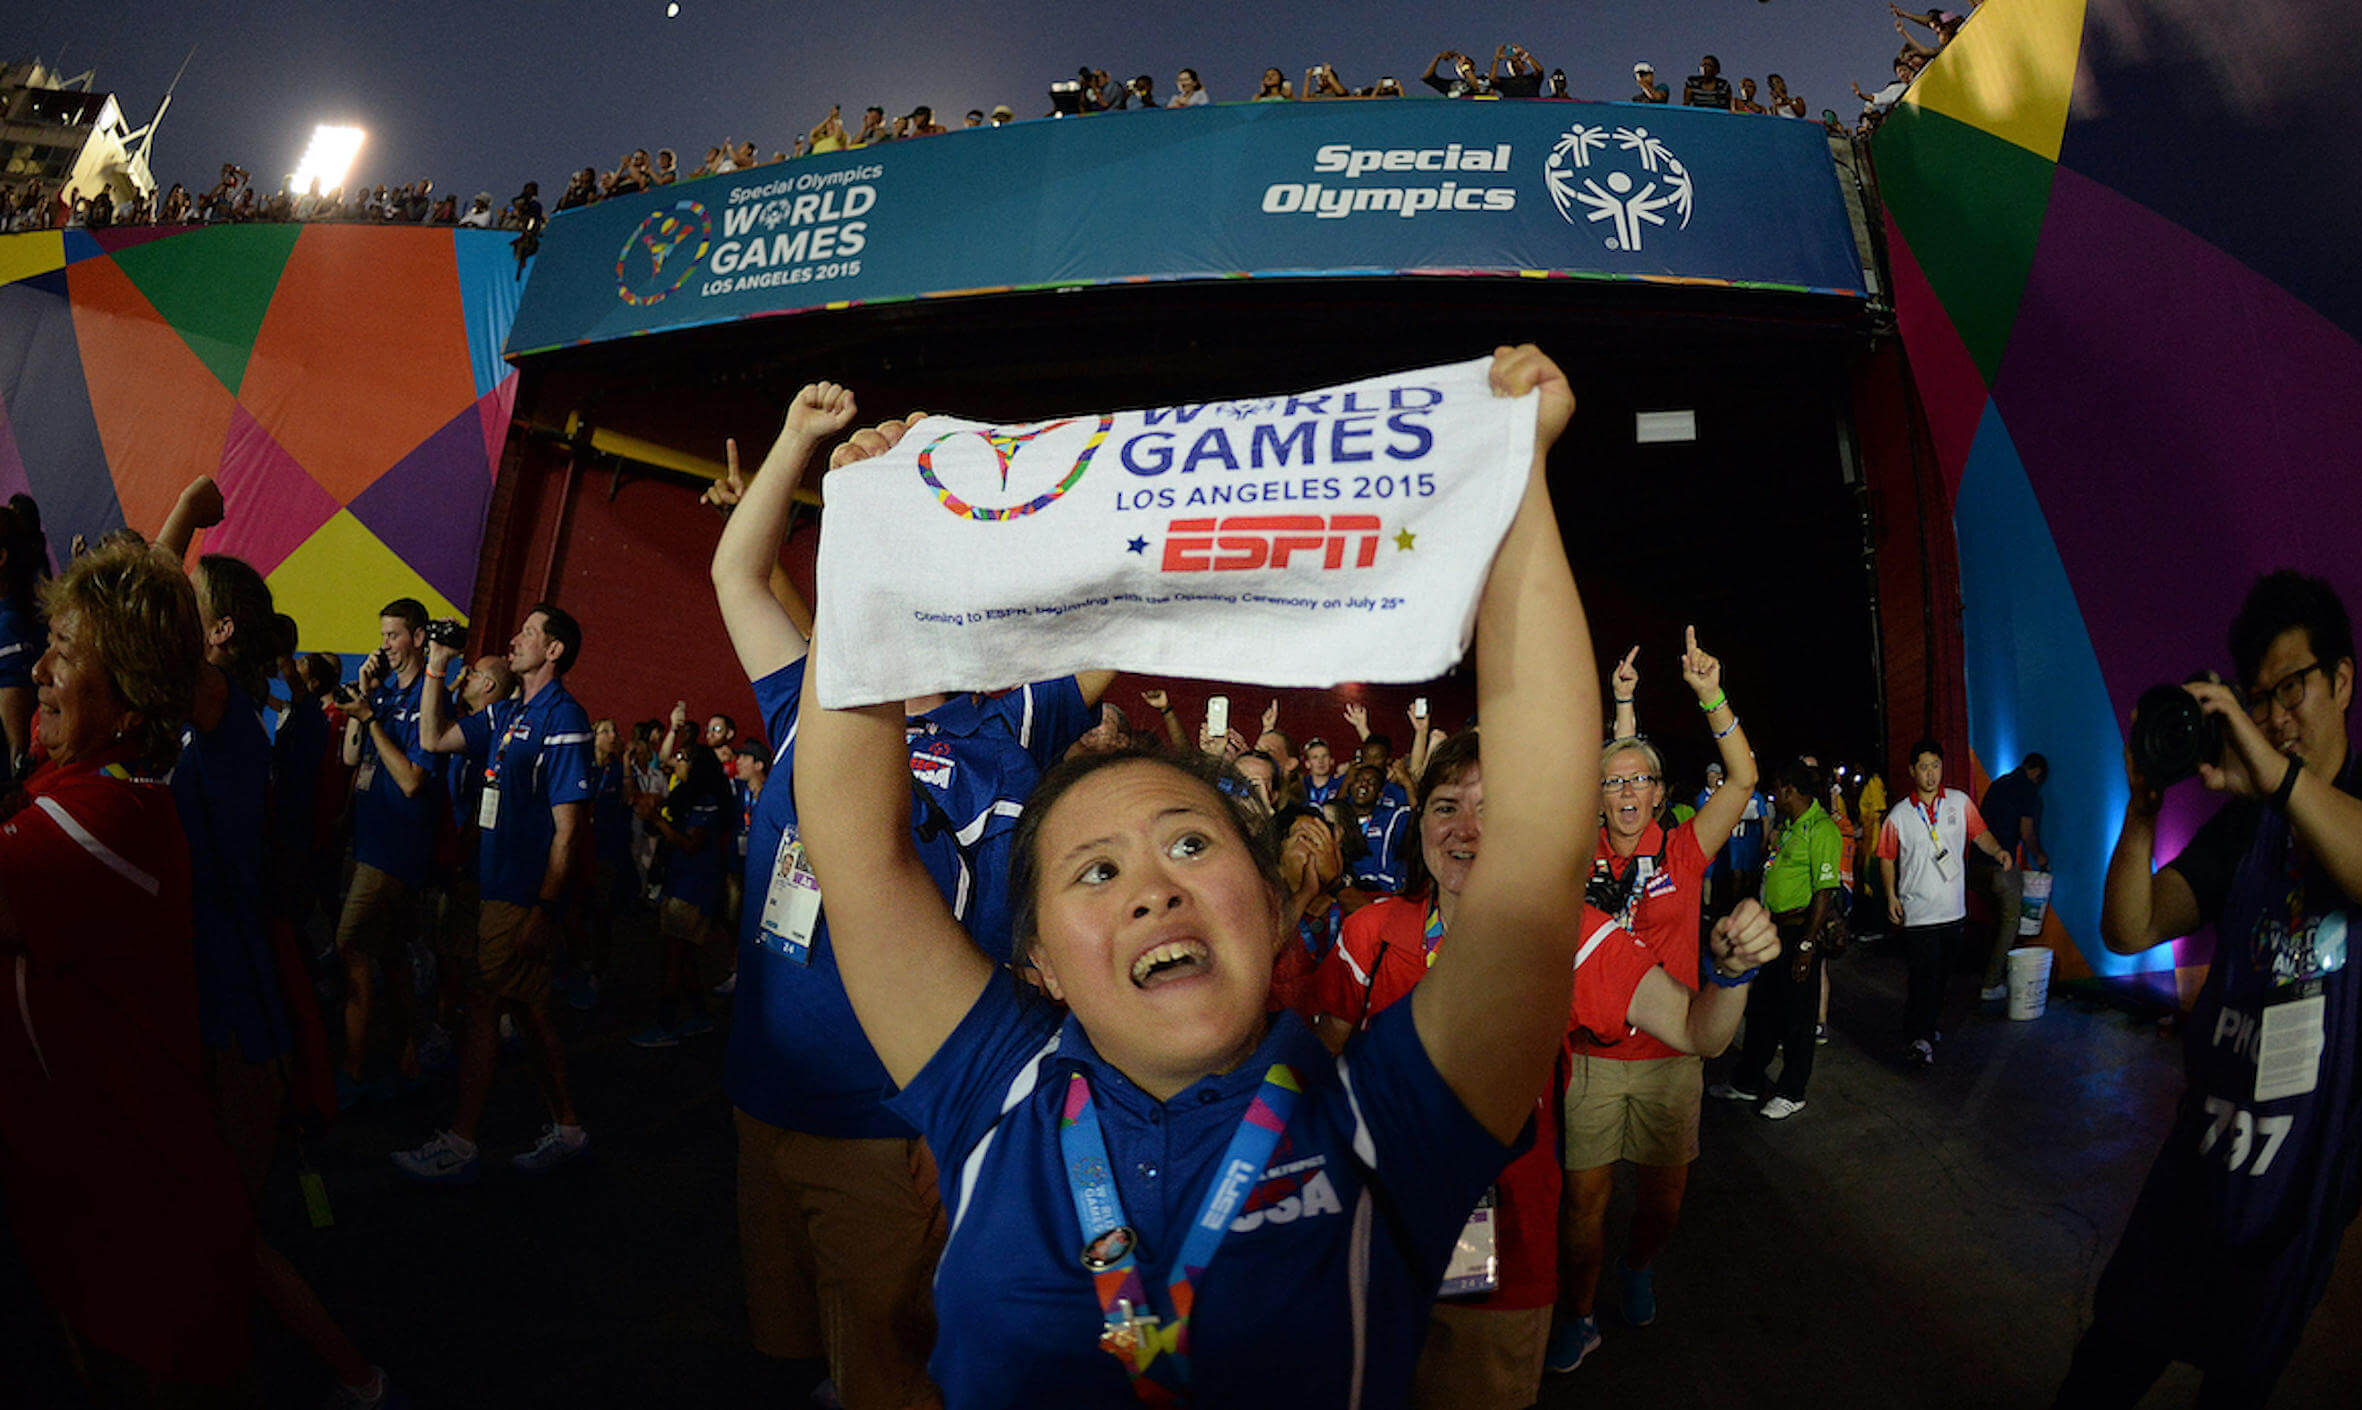 a U.S. athlete holds up a sign in celebration during the Special Olympics World Games